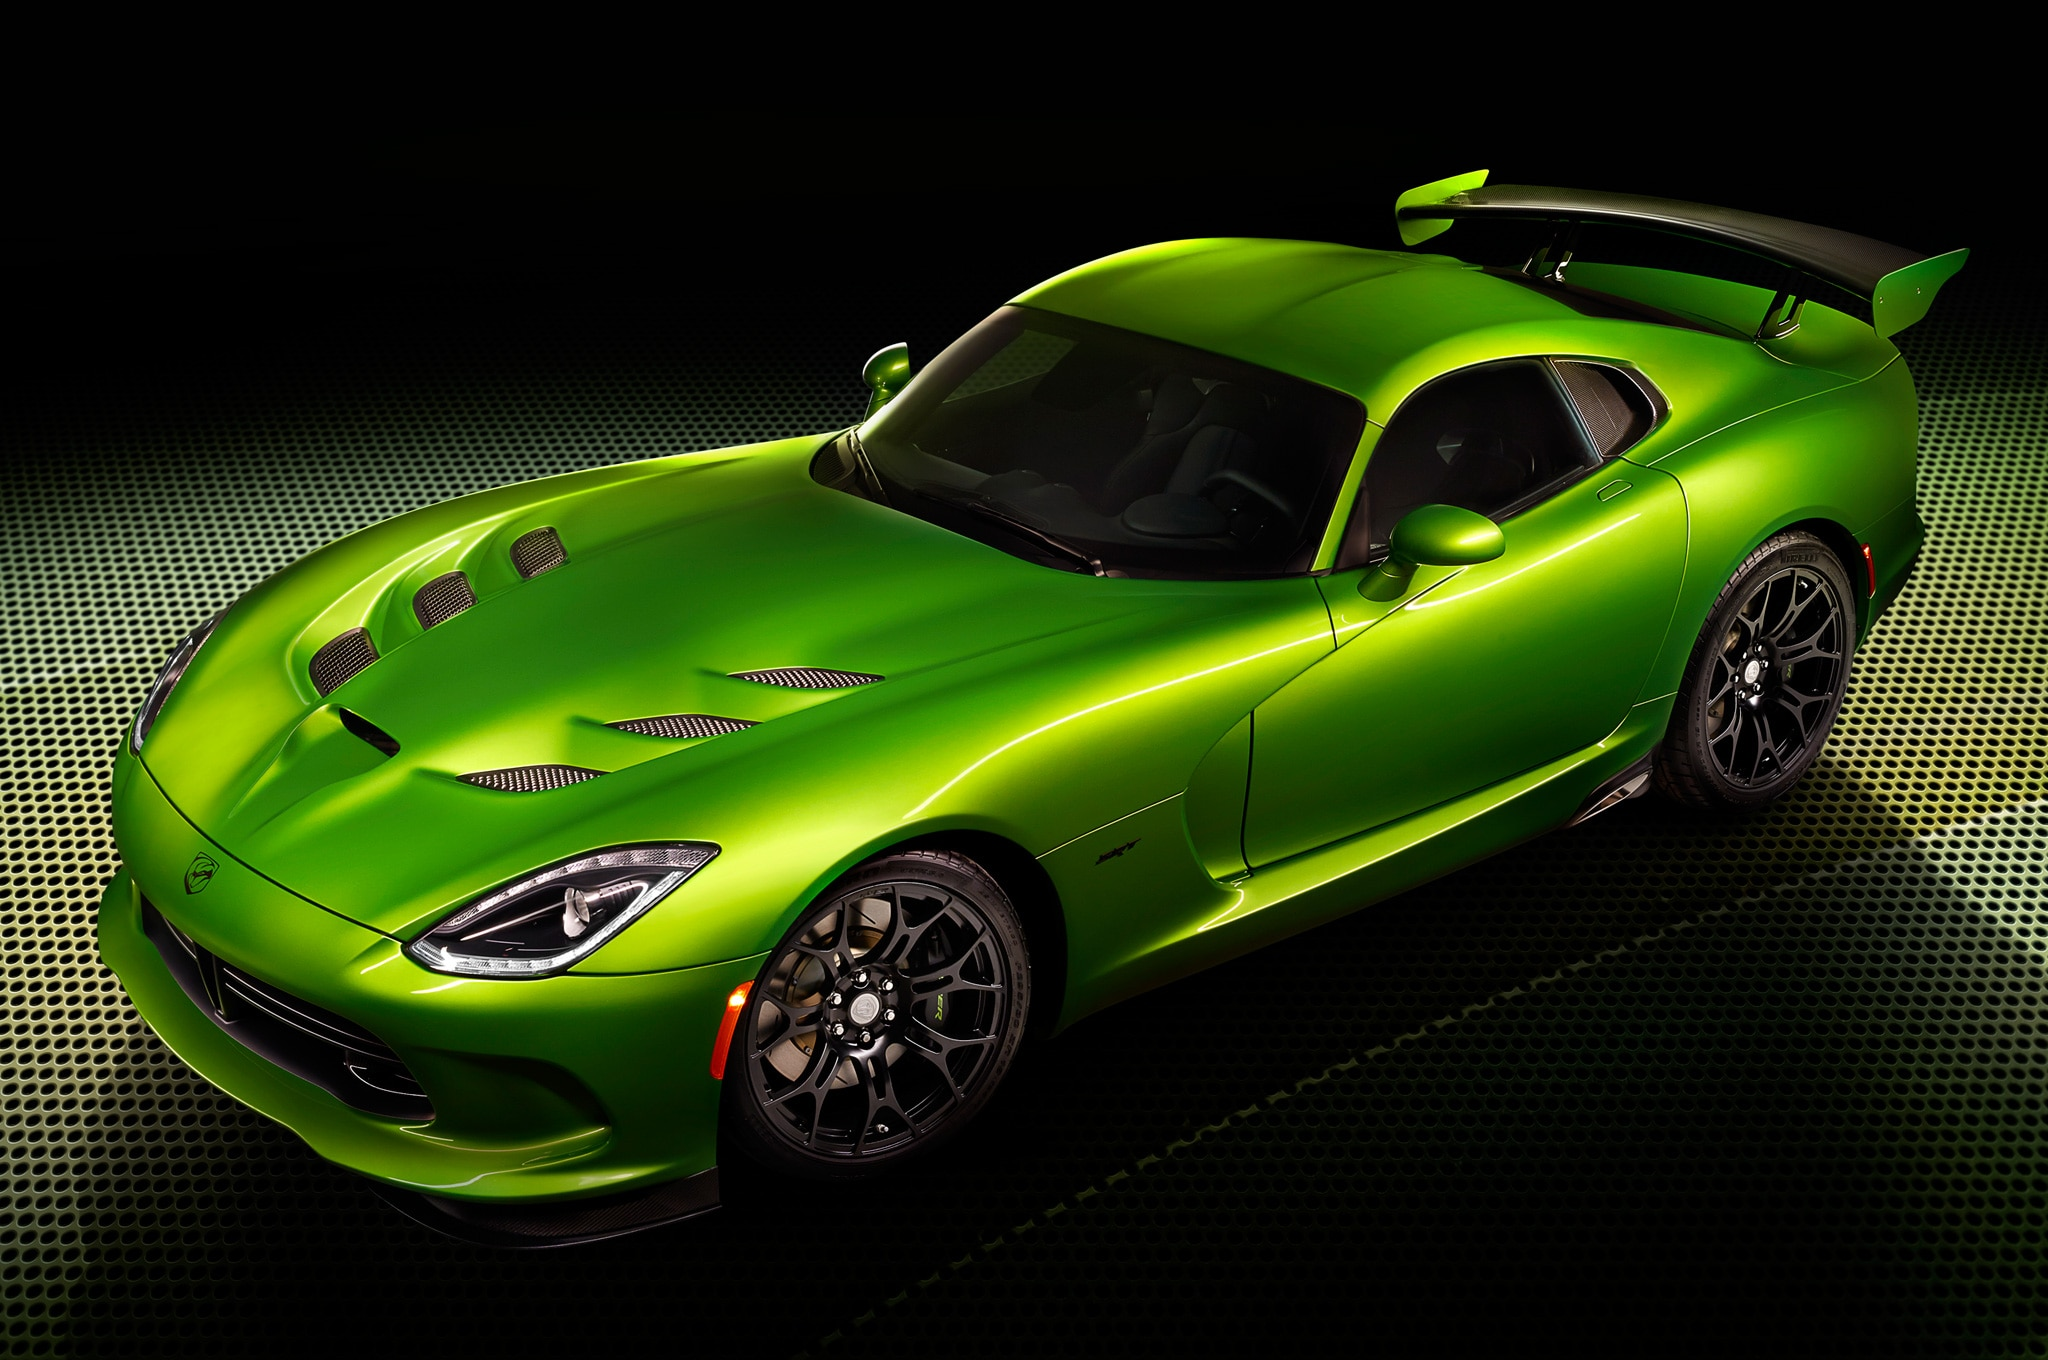 2014 SRT Viper Stryker Green Front Side View1